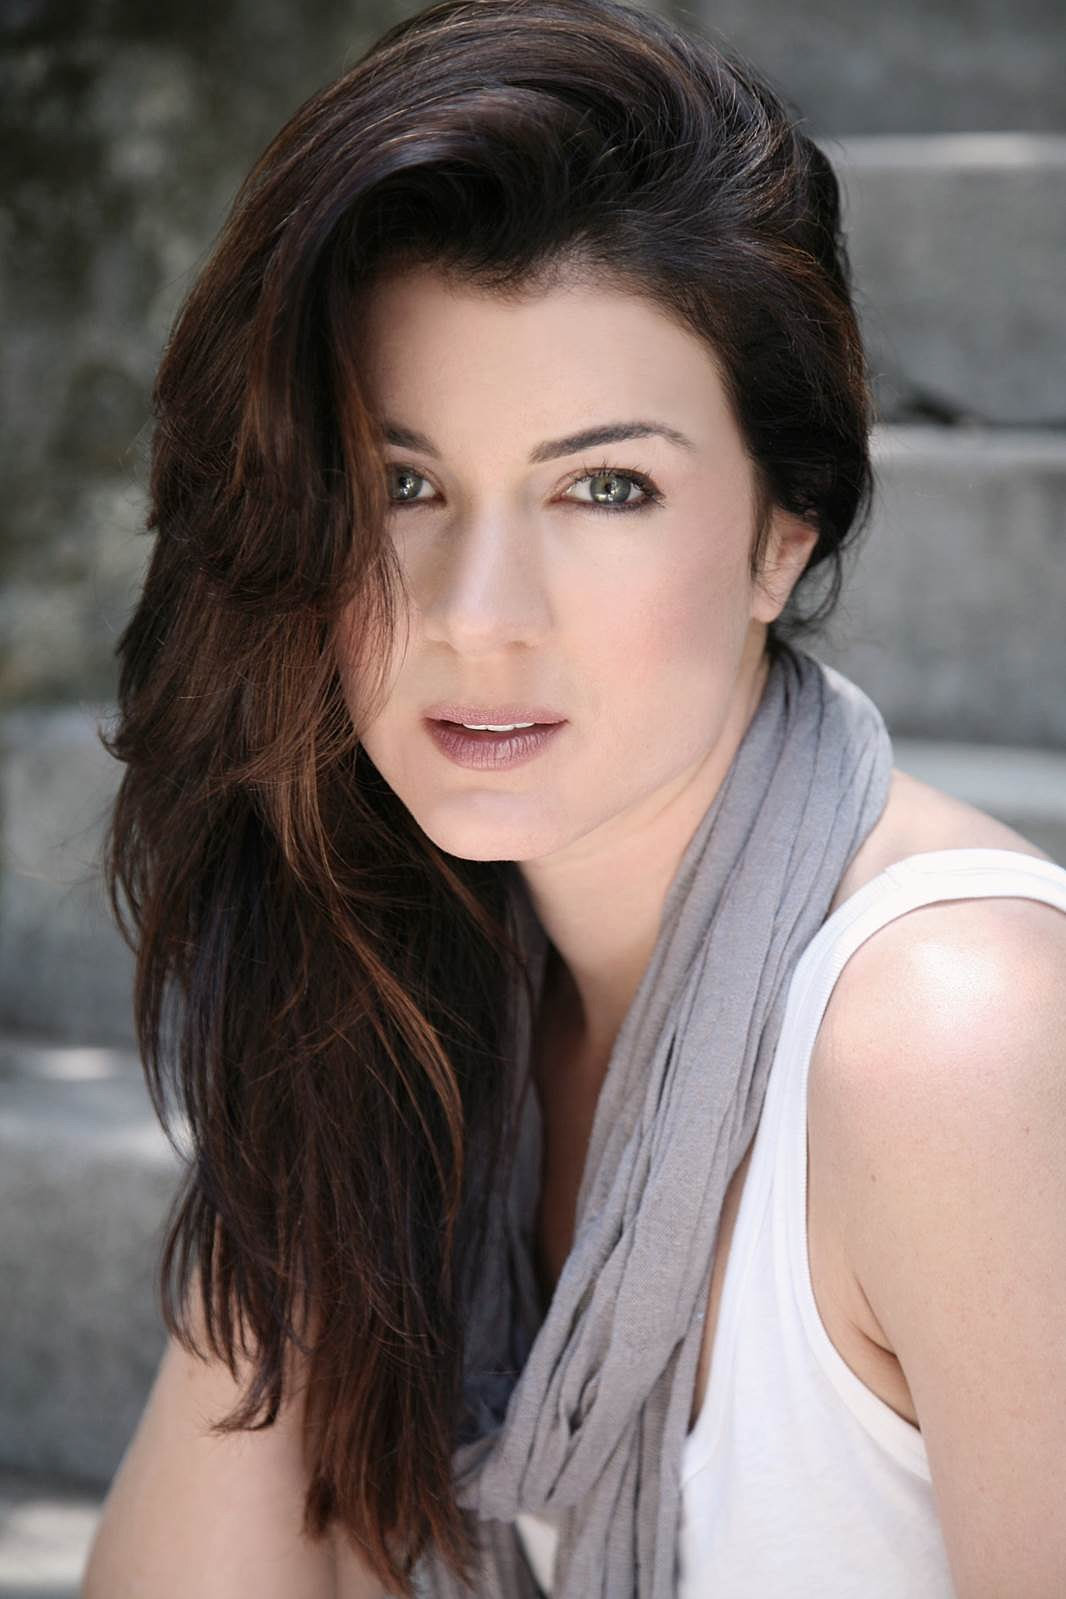 gabrielle miller x filesgabrielle miller canada, gabrielle miller 2016, gabrielle miller biography, gabrielle miller, gabrielle miller messner, gabrielle miller husband, gabrielle miller hot, gabrielle miller net worth, gabrielle miller instagram, gabrielle miller imdb, gabrielle miller trivago, gabrielle miller height, gabrielle miller bikini, gabrielle miller facebook, gabrielle miller son, gabrielle miller x files, gabrielle miller australia